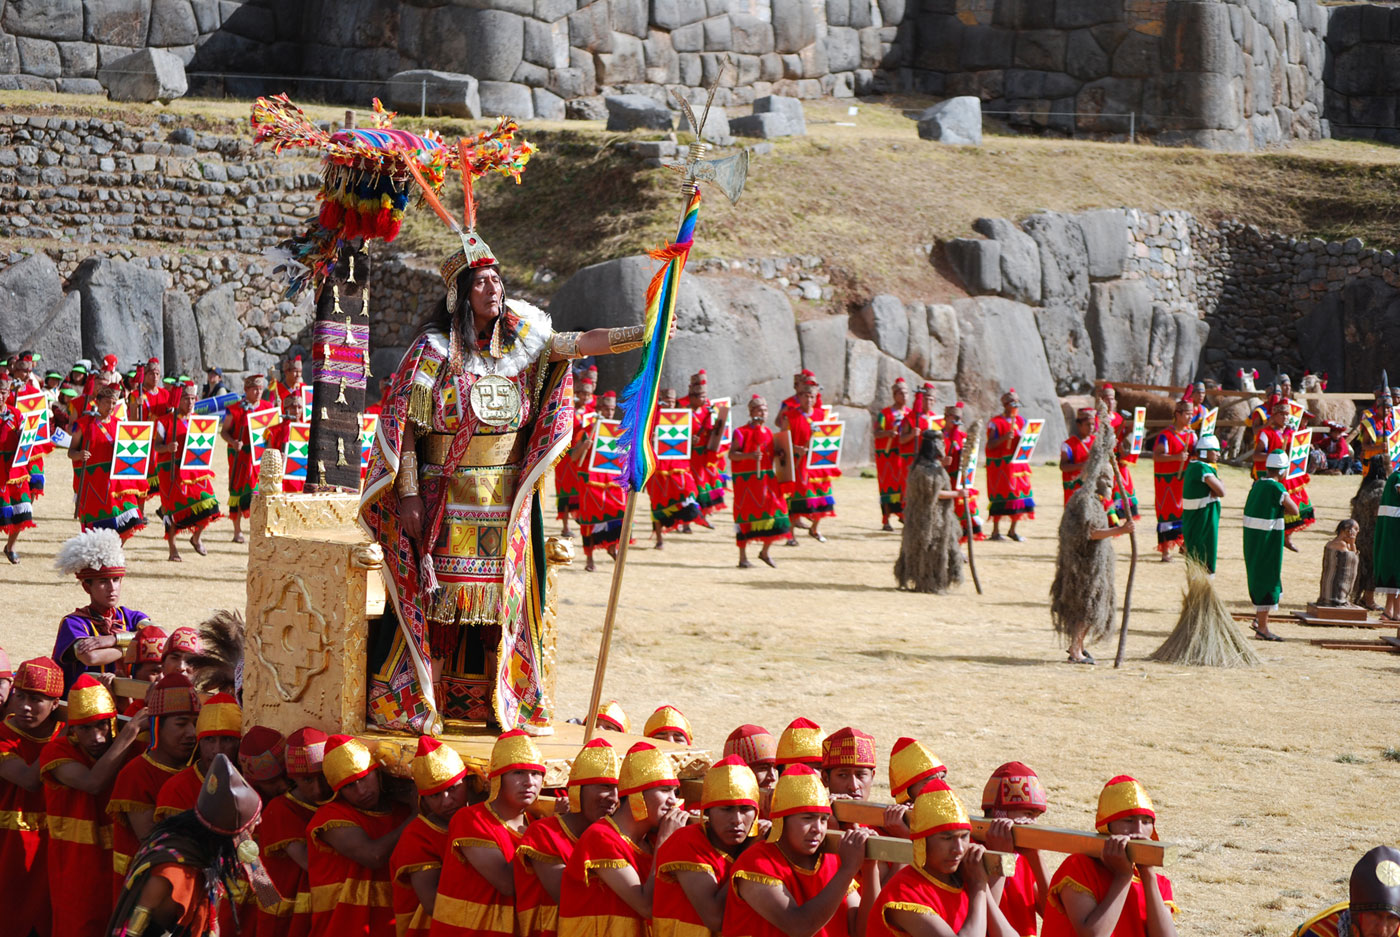 Inti Raymi, the Festival of the Sun